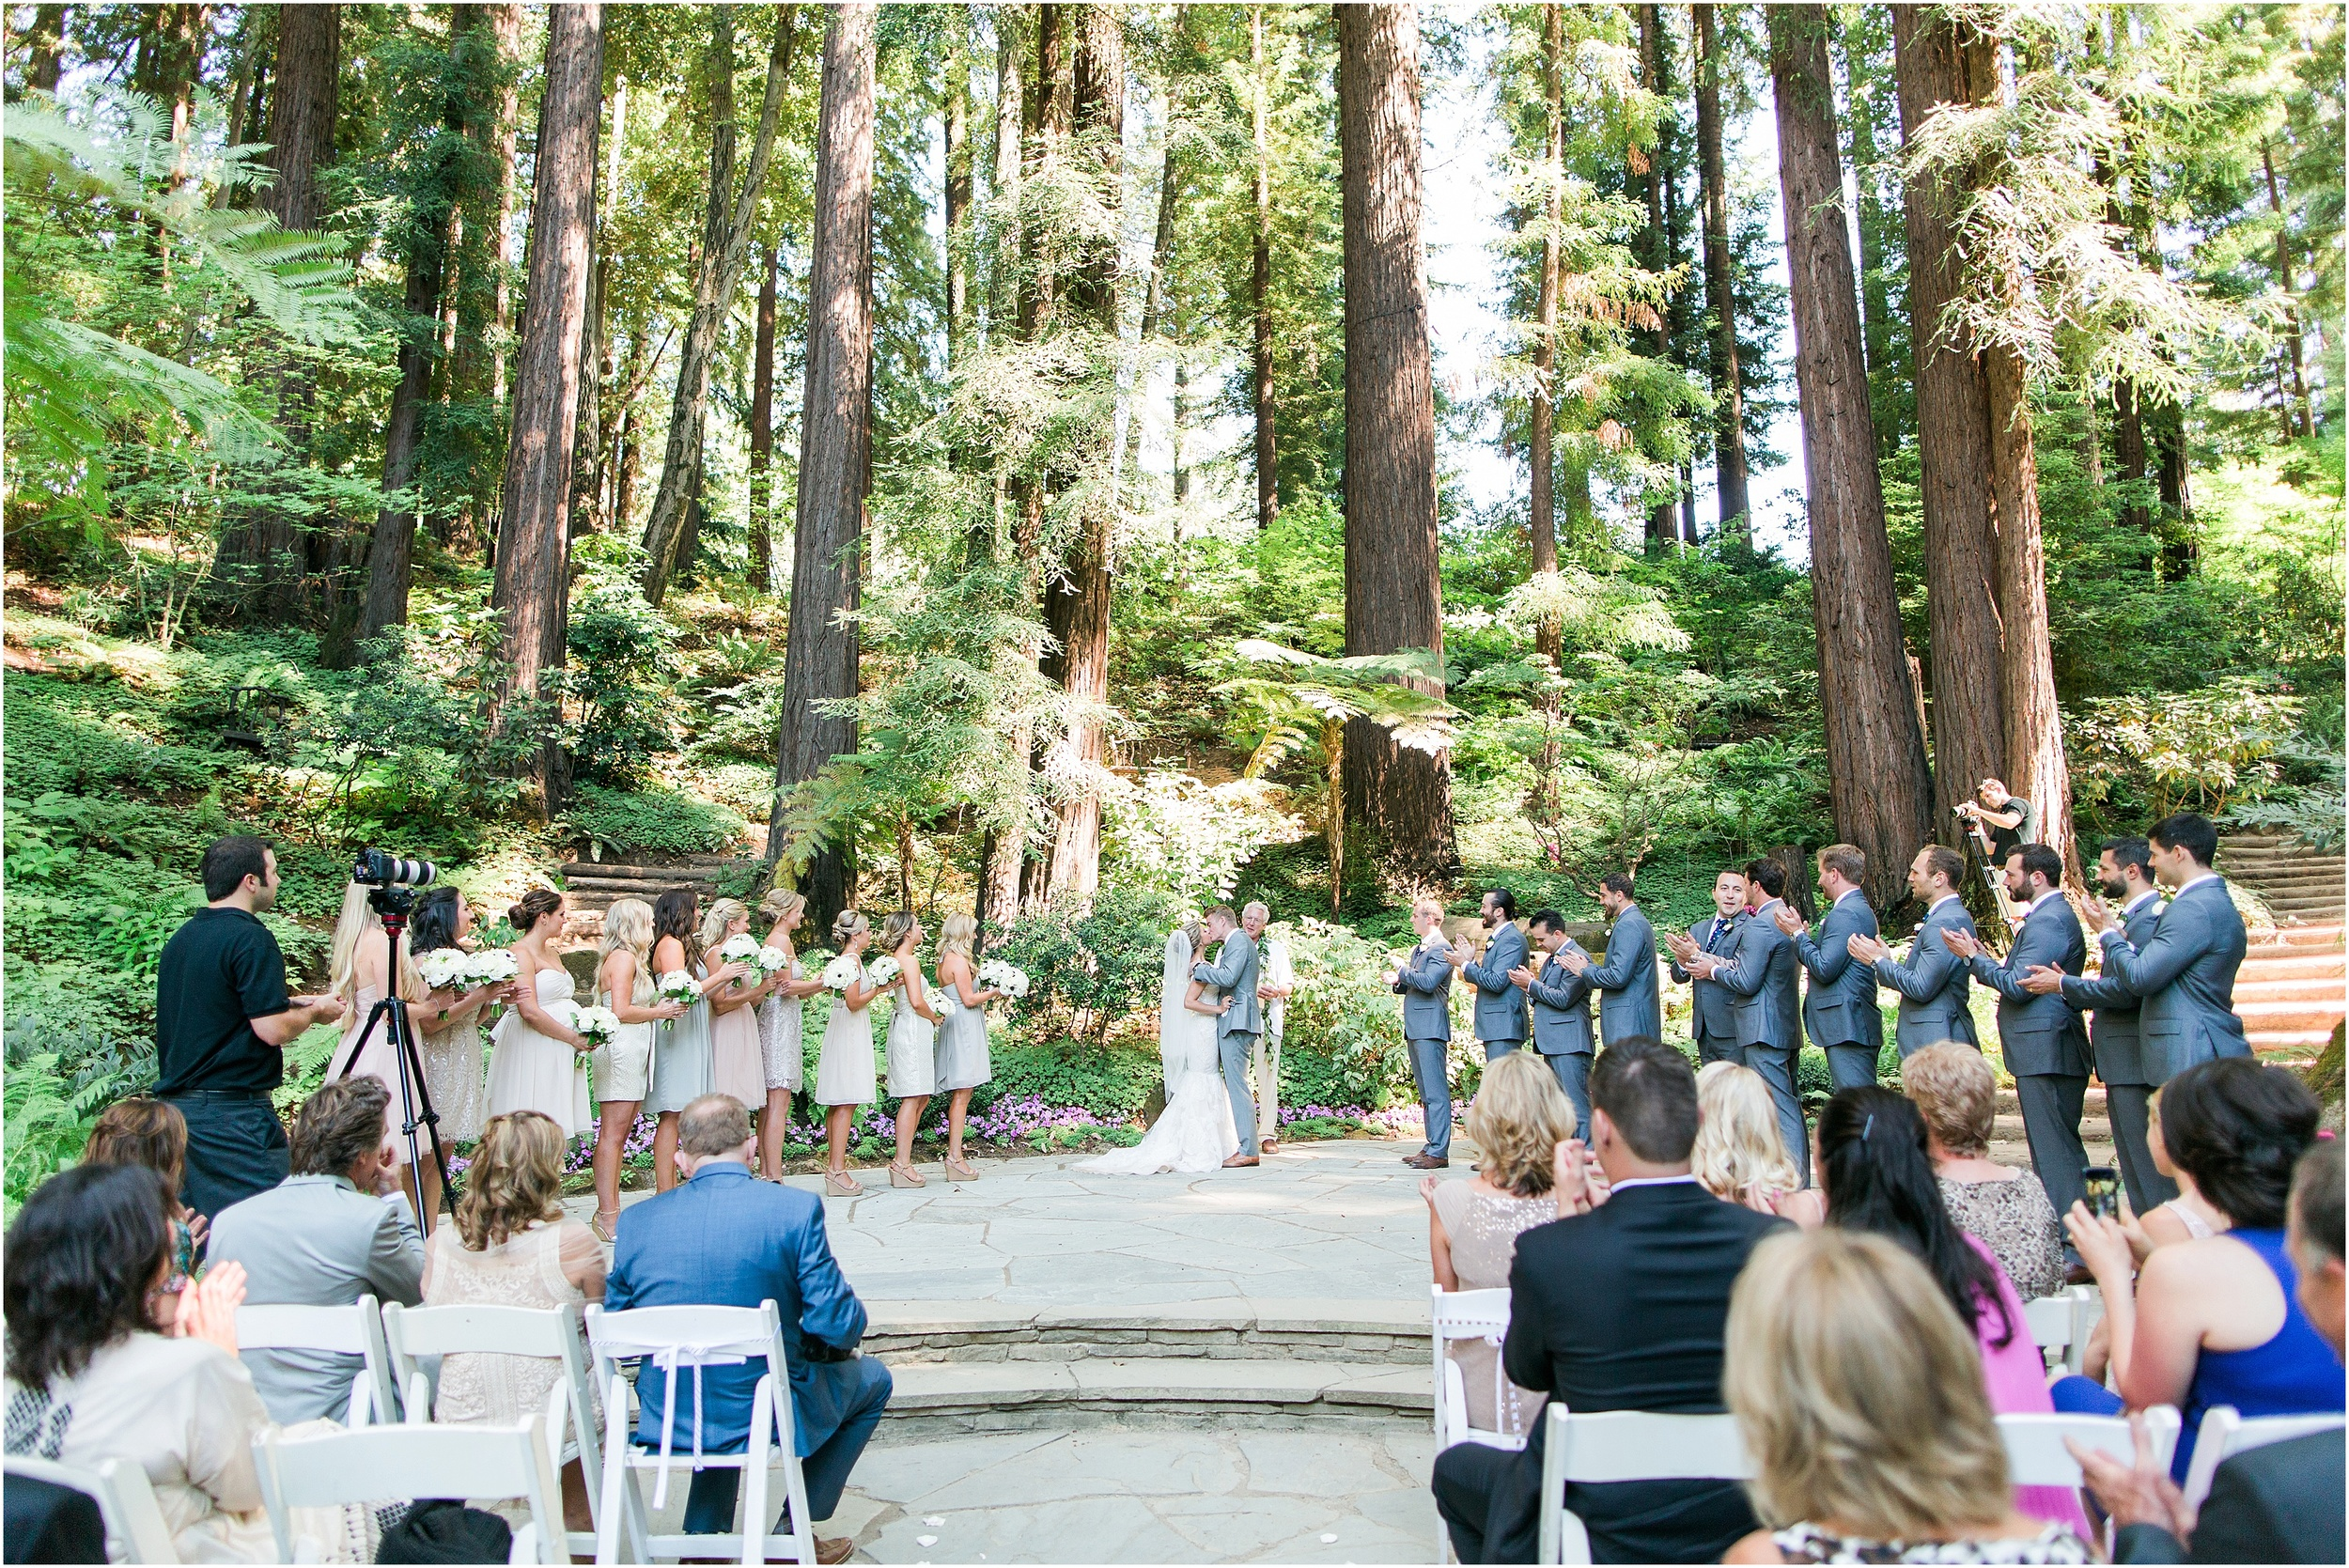 Nestldown_Rustic_Summer_Redwoods_Wedding- 030.jpg